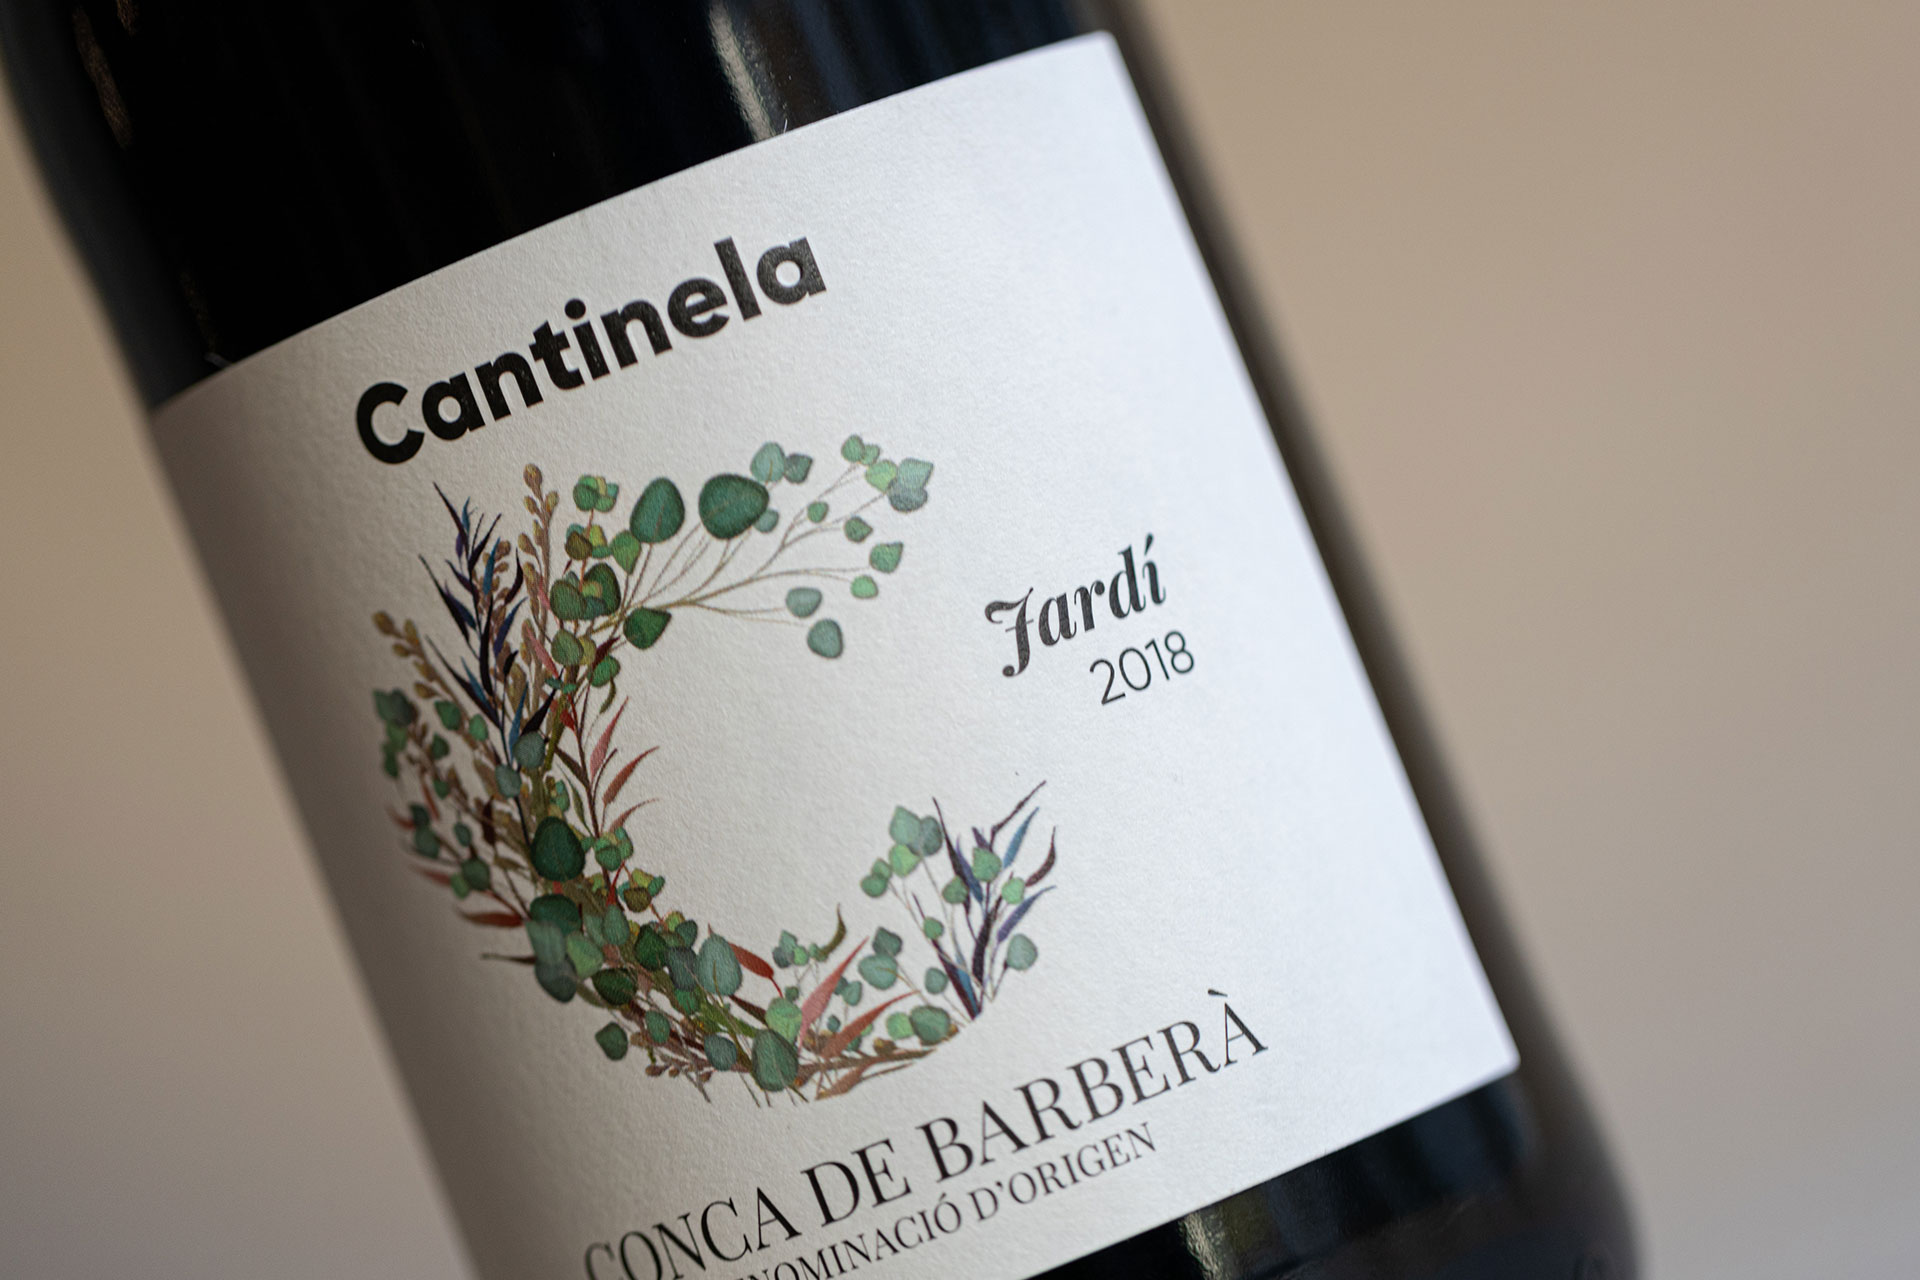 packaging cantinela